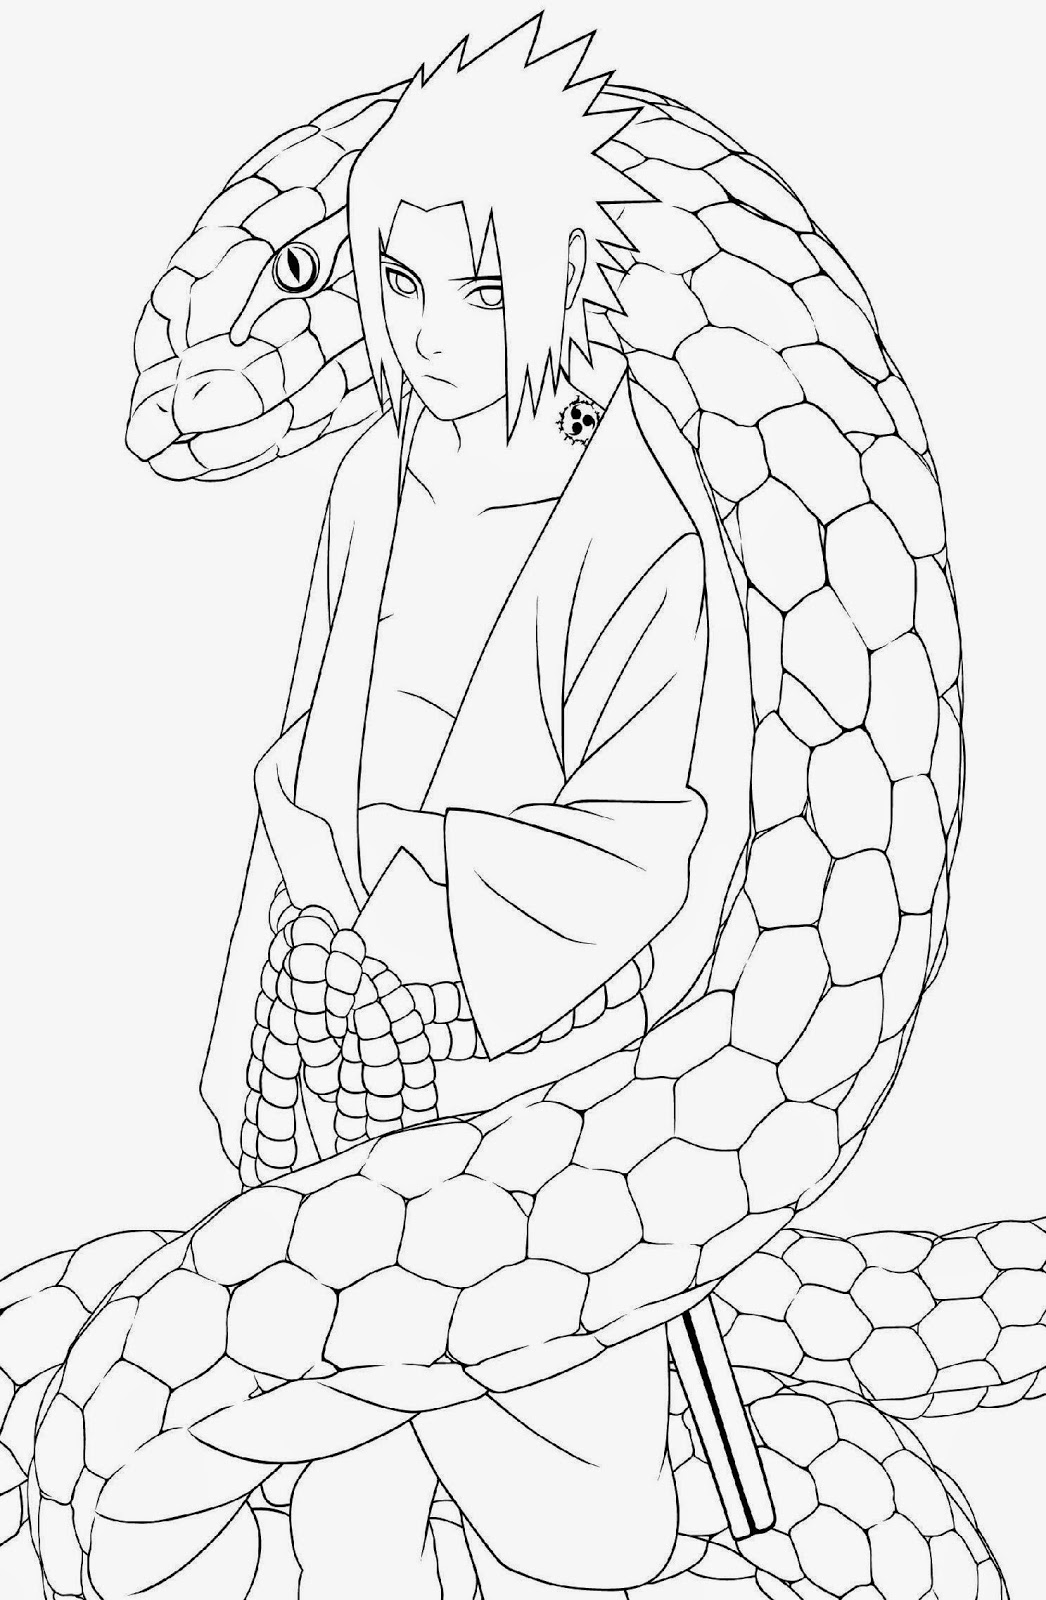 Naruto coloring sheets free coloring sheet for Anime coloring pages naruto